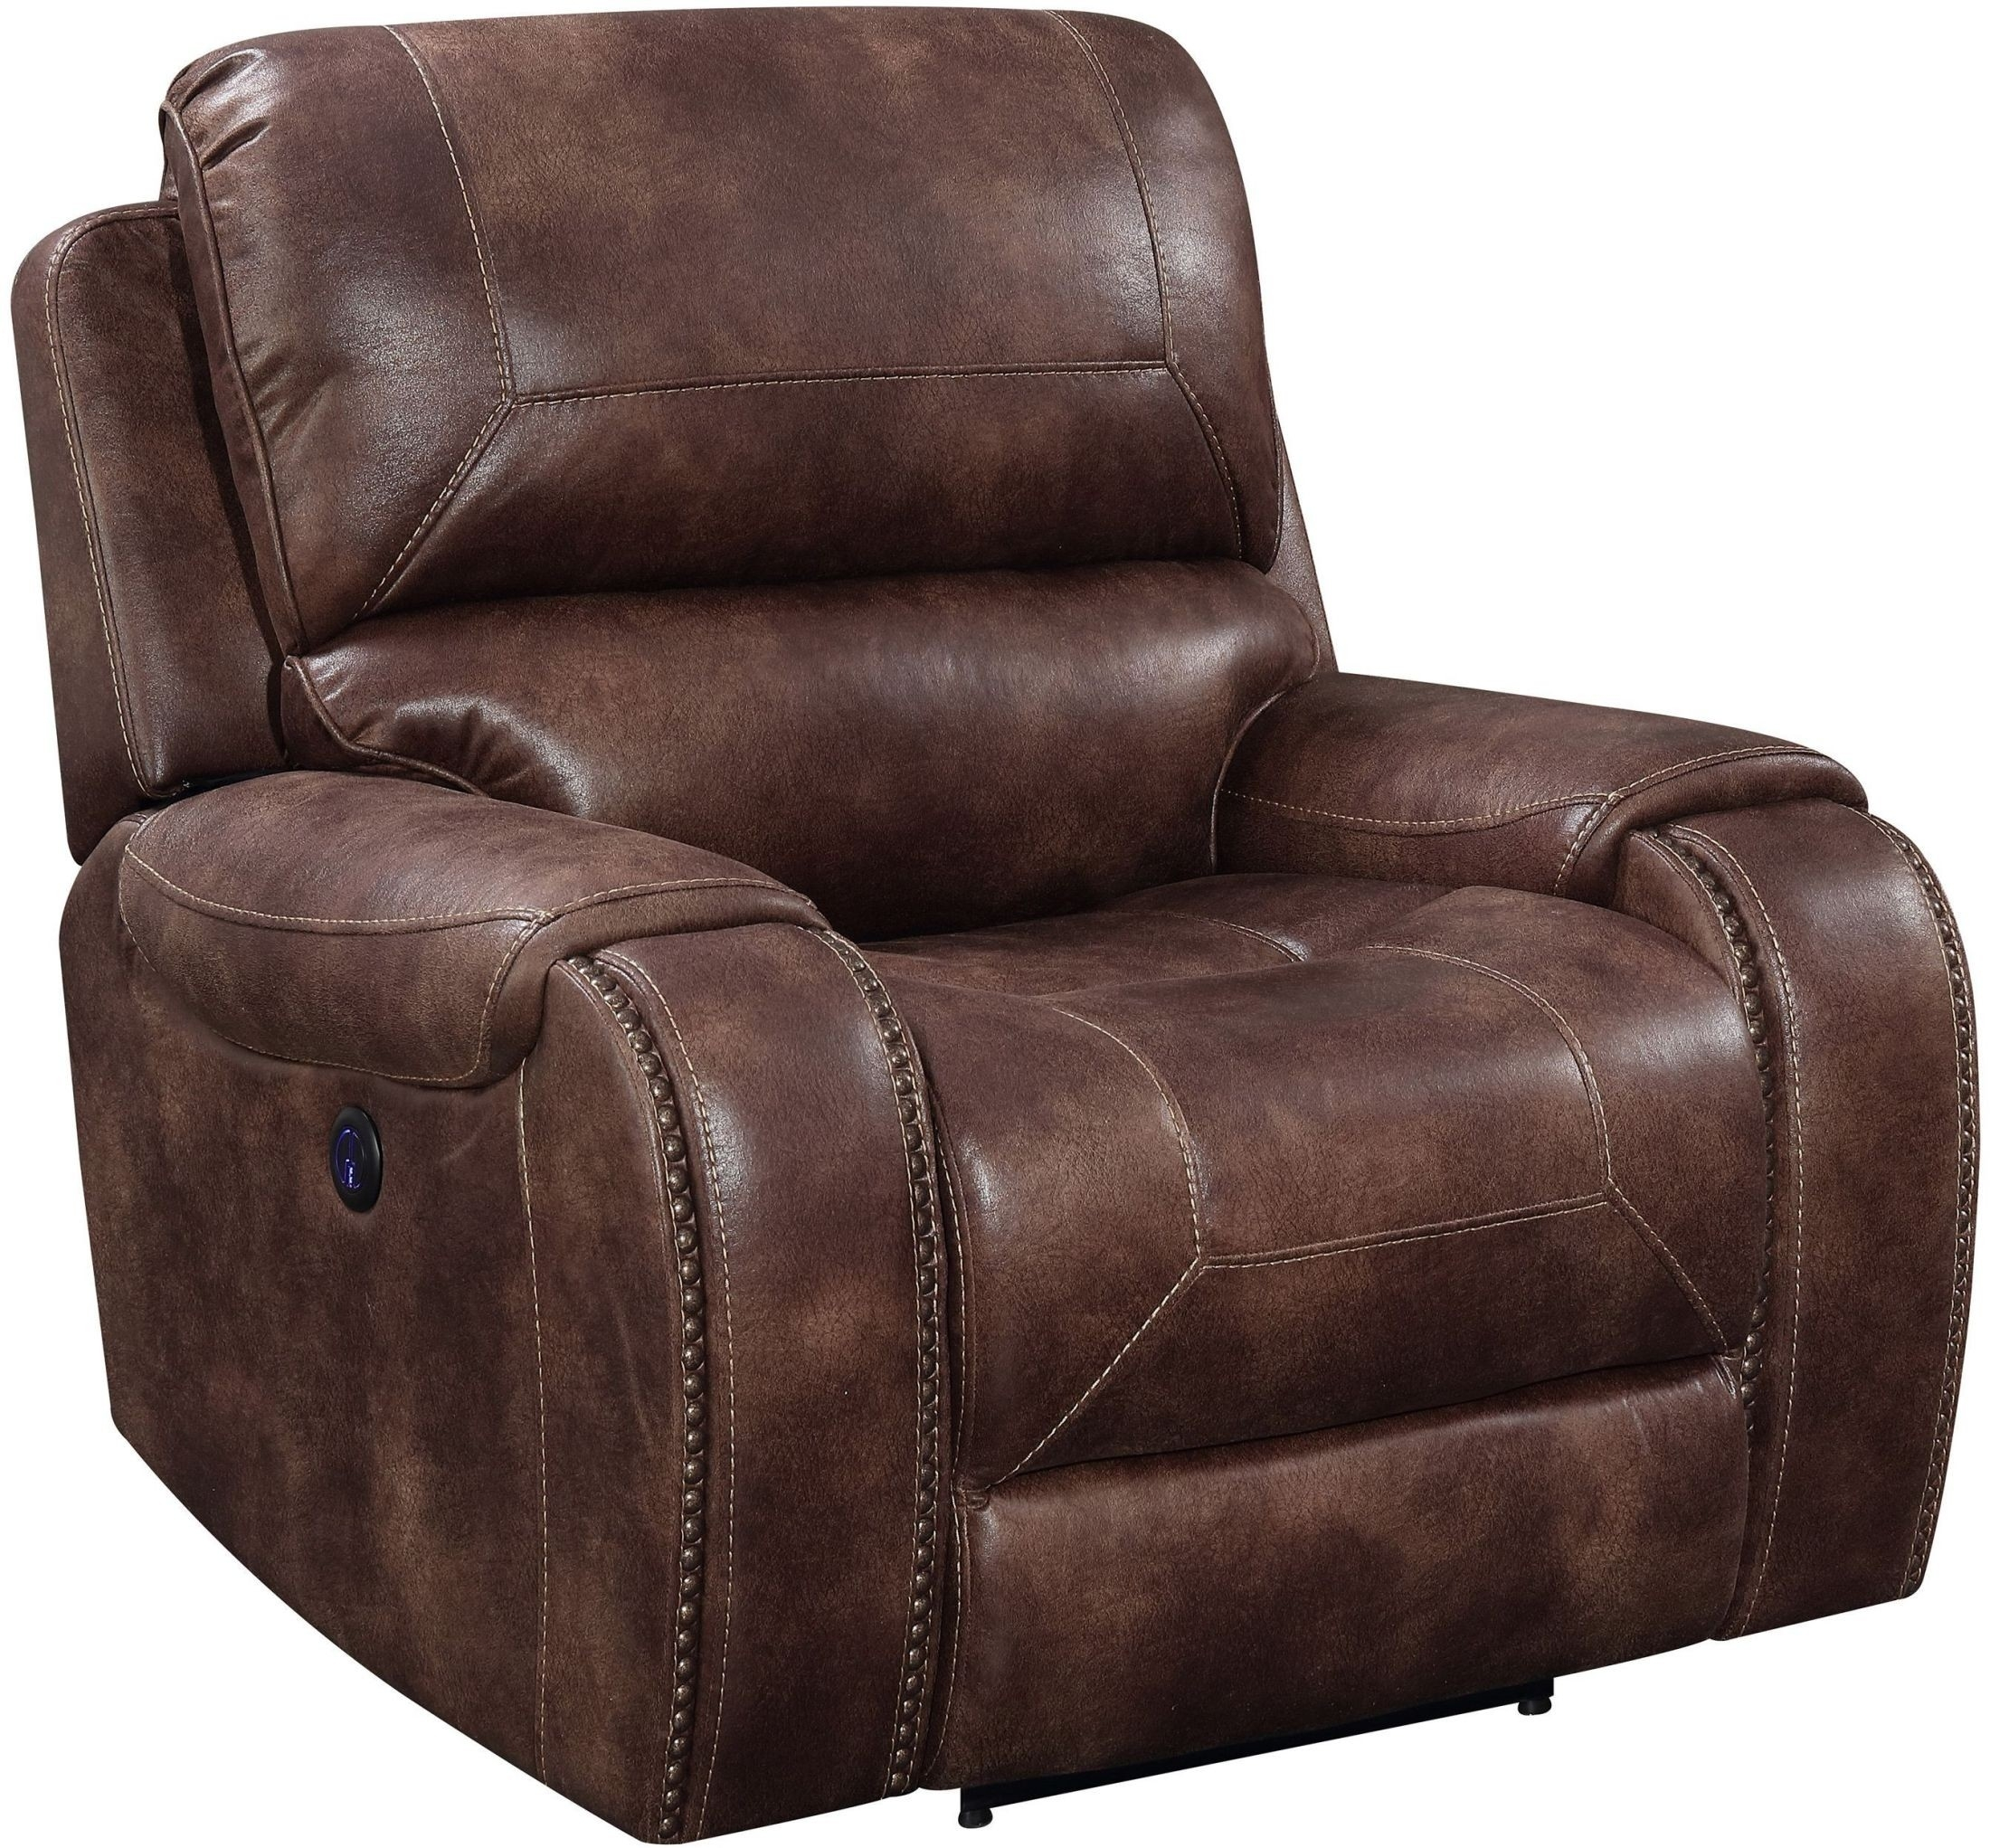 Jennings Waylon Mocha Power Recliner From Prime Resource With Waylon 3 Piece Power Reclining Sectionals (Image 13 of 25)